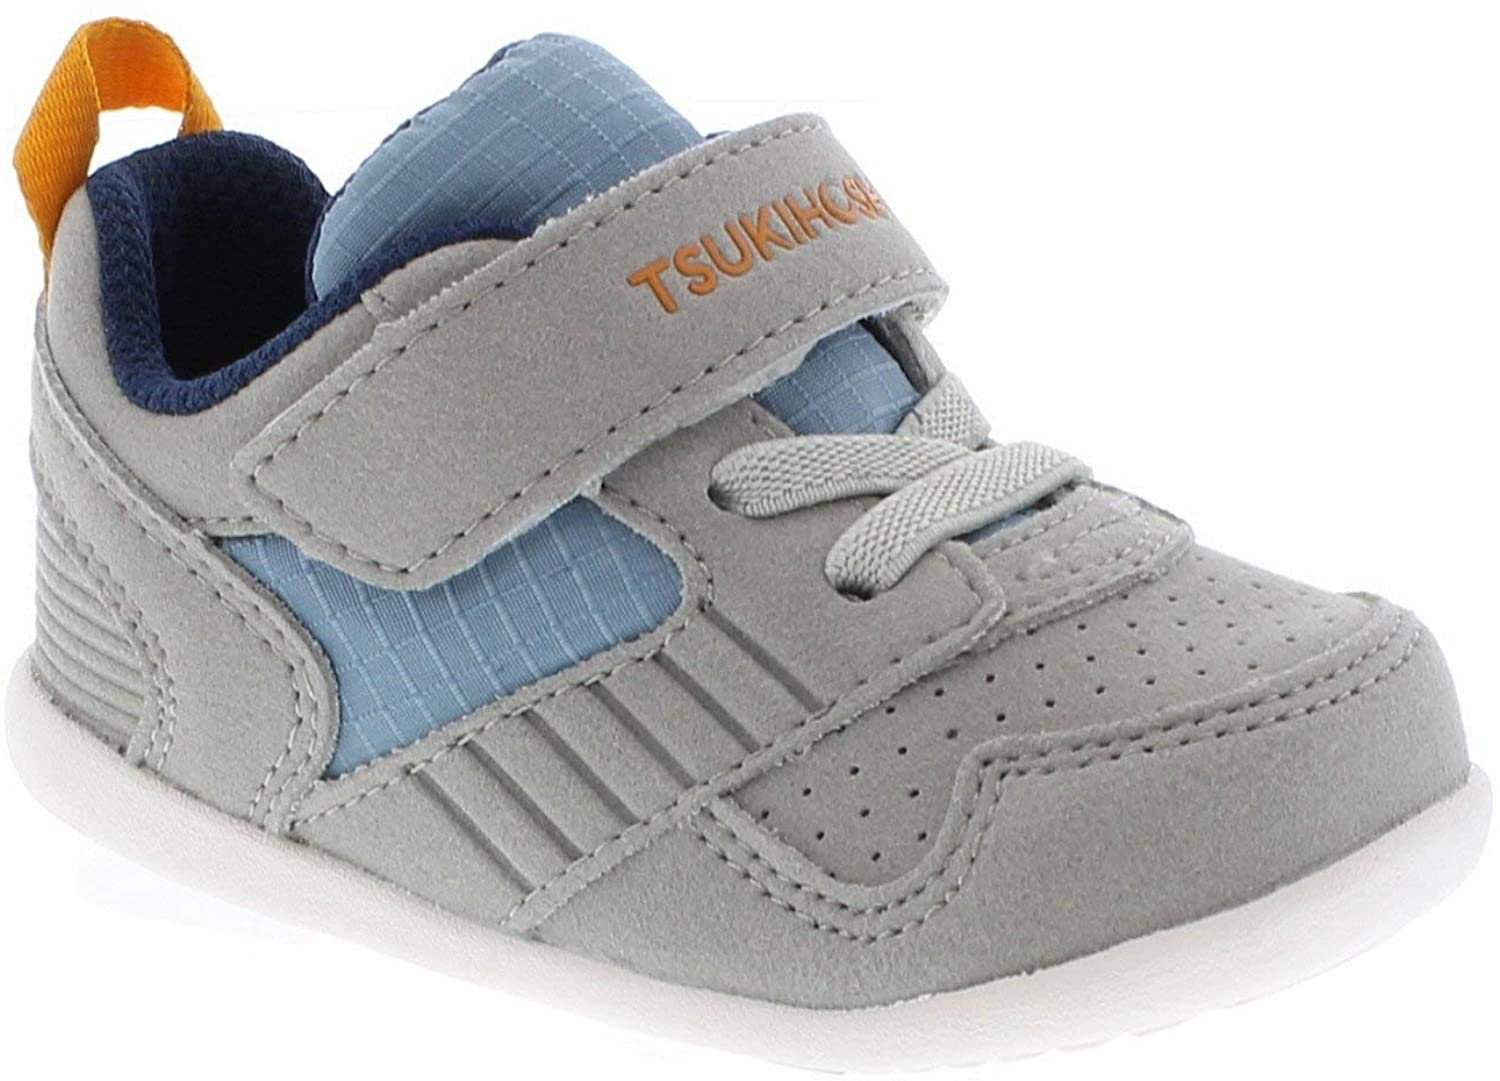 Tsukihoshi Baby Racer Toddler Running Shoes (Machine Washable) - ShoeKid.ca